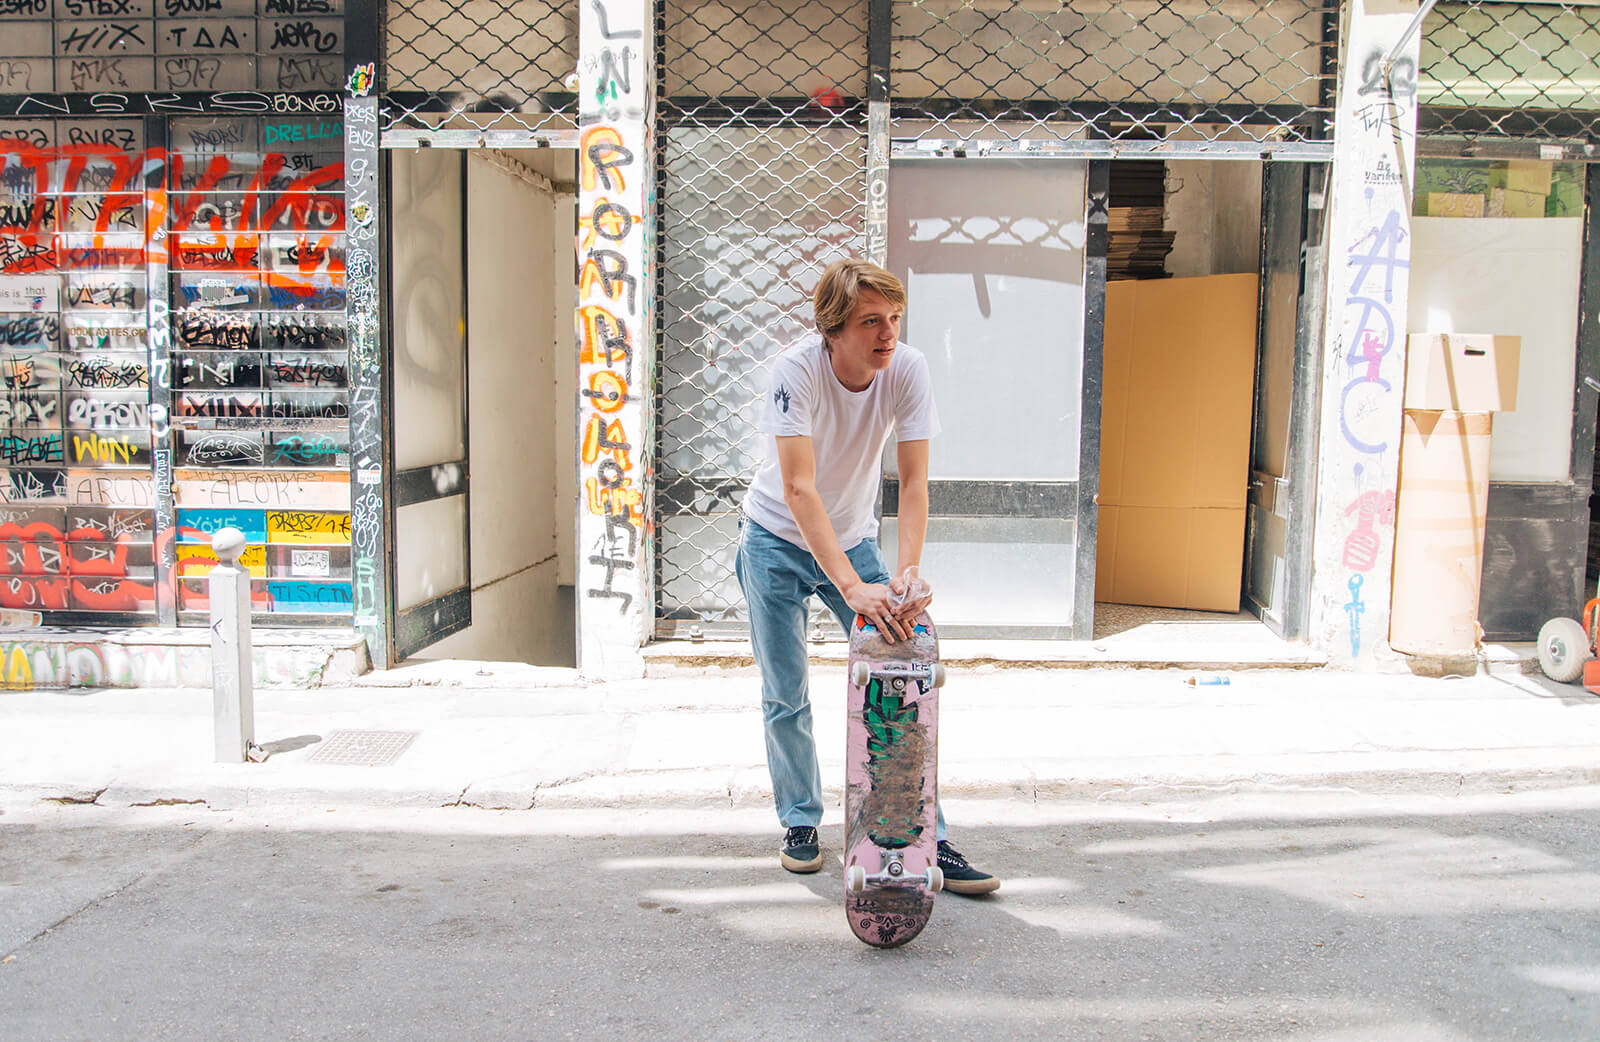 Skater resting at Protogenous Street, Athens